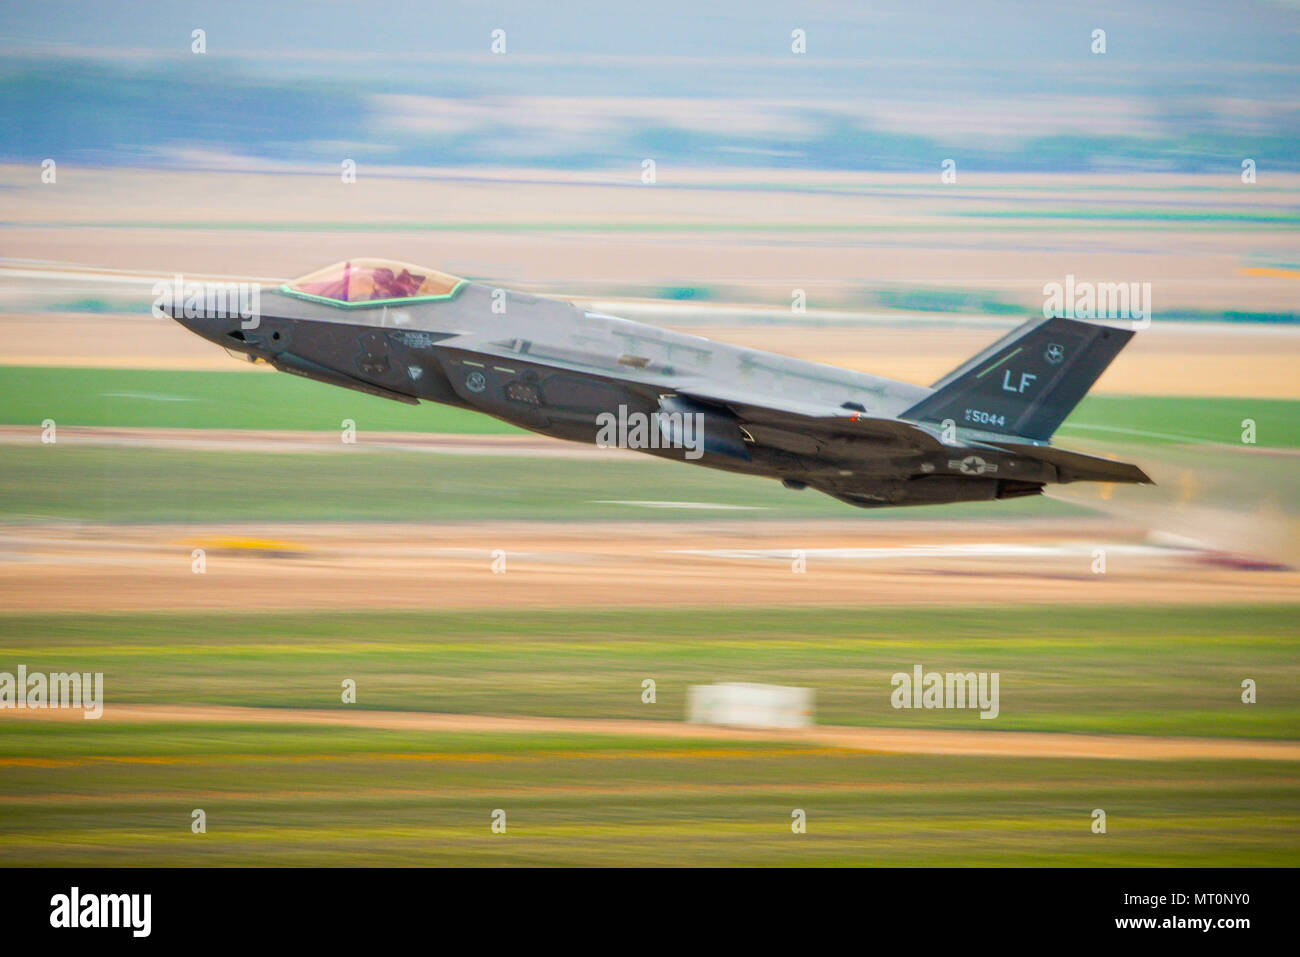 A 56th Fighter Wing F-35A Lightning II pilot takes off from Luke Air Force Base, Ariz., July 17, 2017. F-35 basic course students took part in a two and a half week, four flight phase replicating a wartime environment designed to test their training and skills. Today's flight featured six F-35's facing off against eight F-16 Fighting Falcons in defensive counter air attack operation measures. The students will be the first ever to graduate from a course designed specifically to utilize the mission set of the F-35. (U.S. Air Force photo/Airman 1st Class Caleb Worpel) - Stock Image